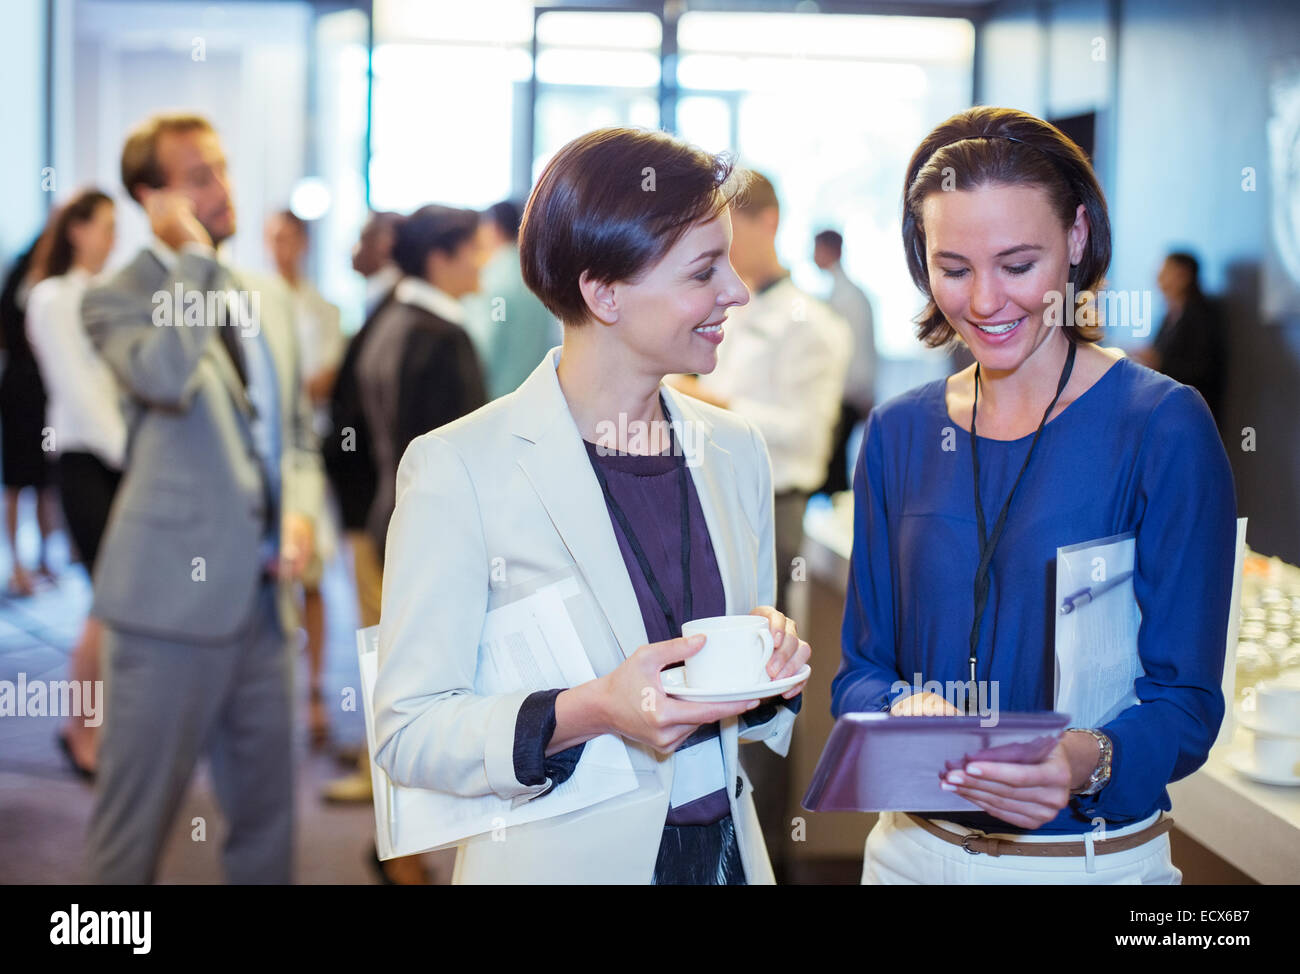 Portrait of two smiling women, talking in lobby of conference center during coffee break - Stock Image